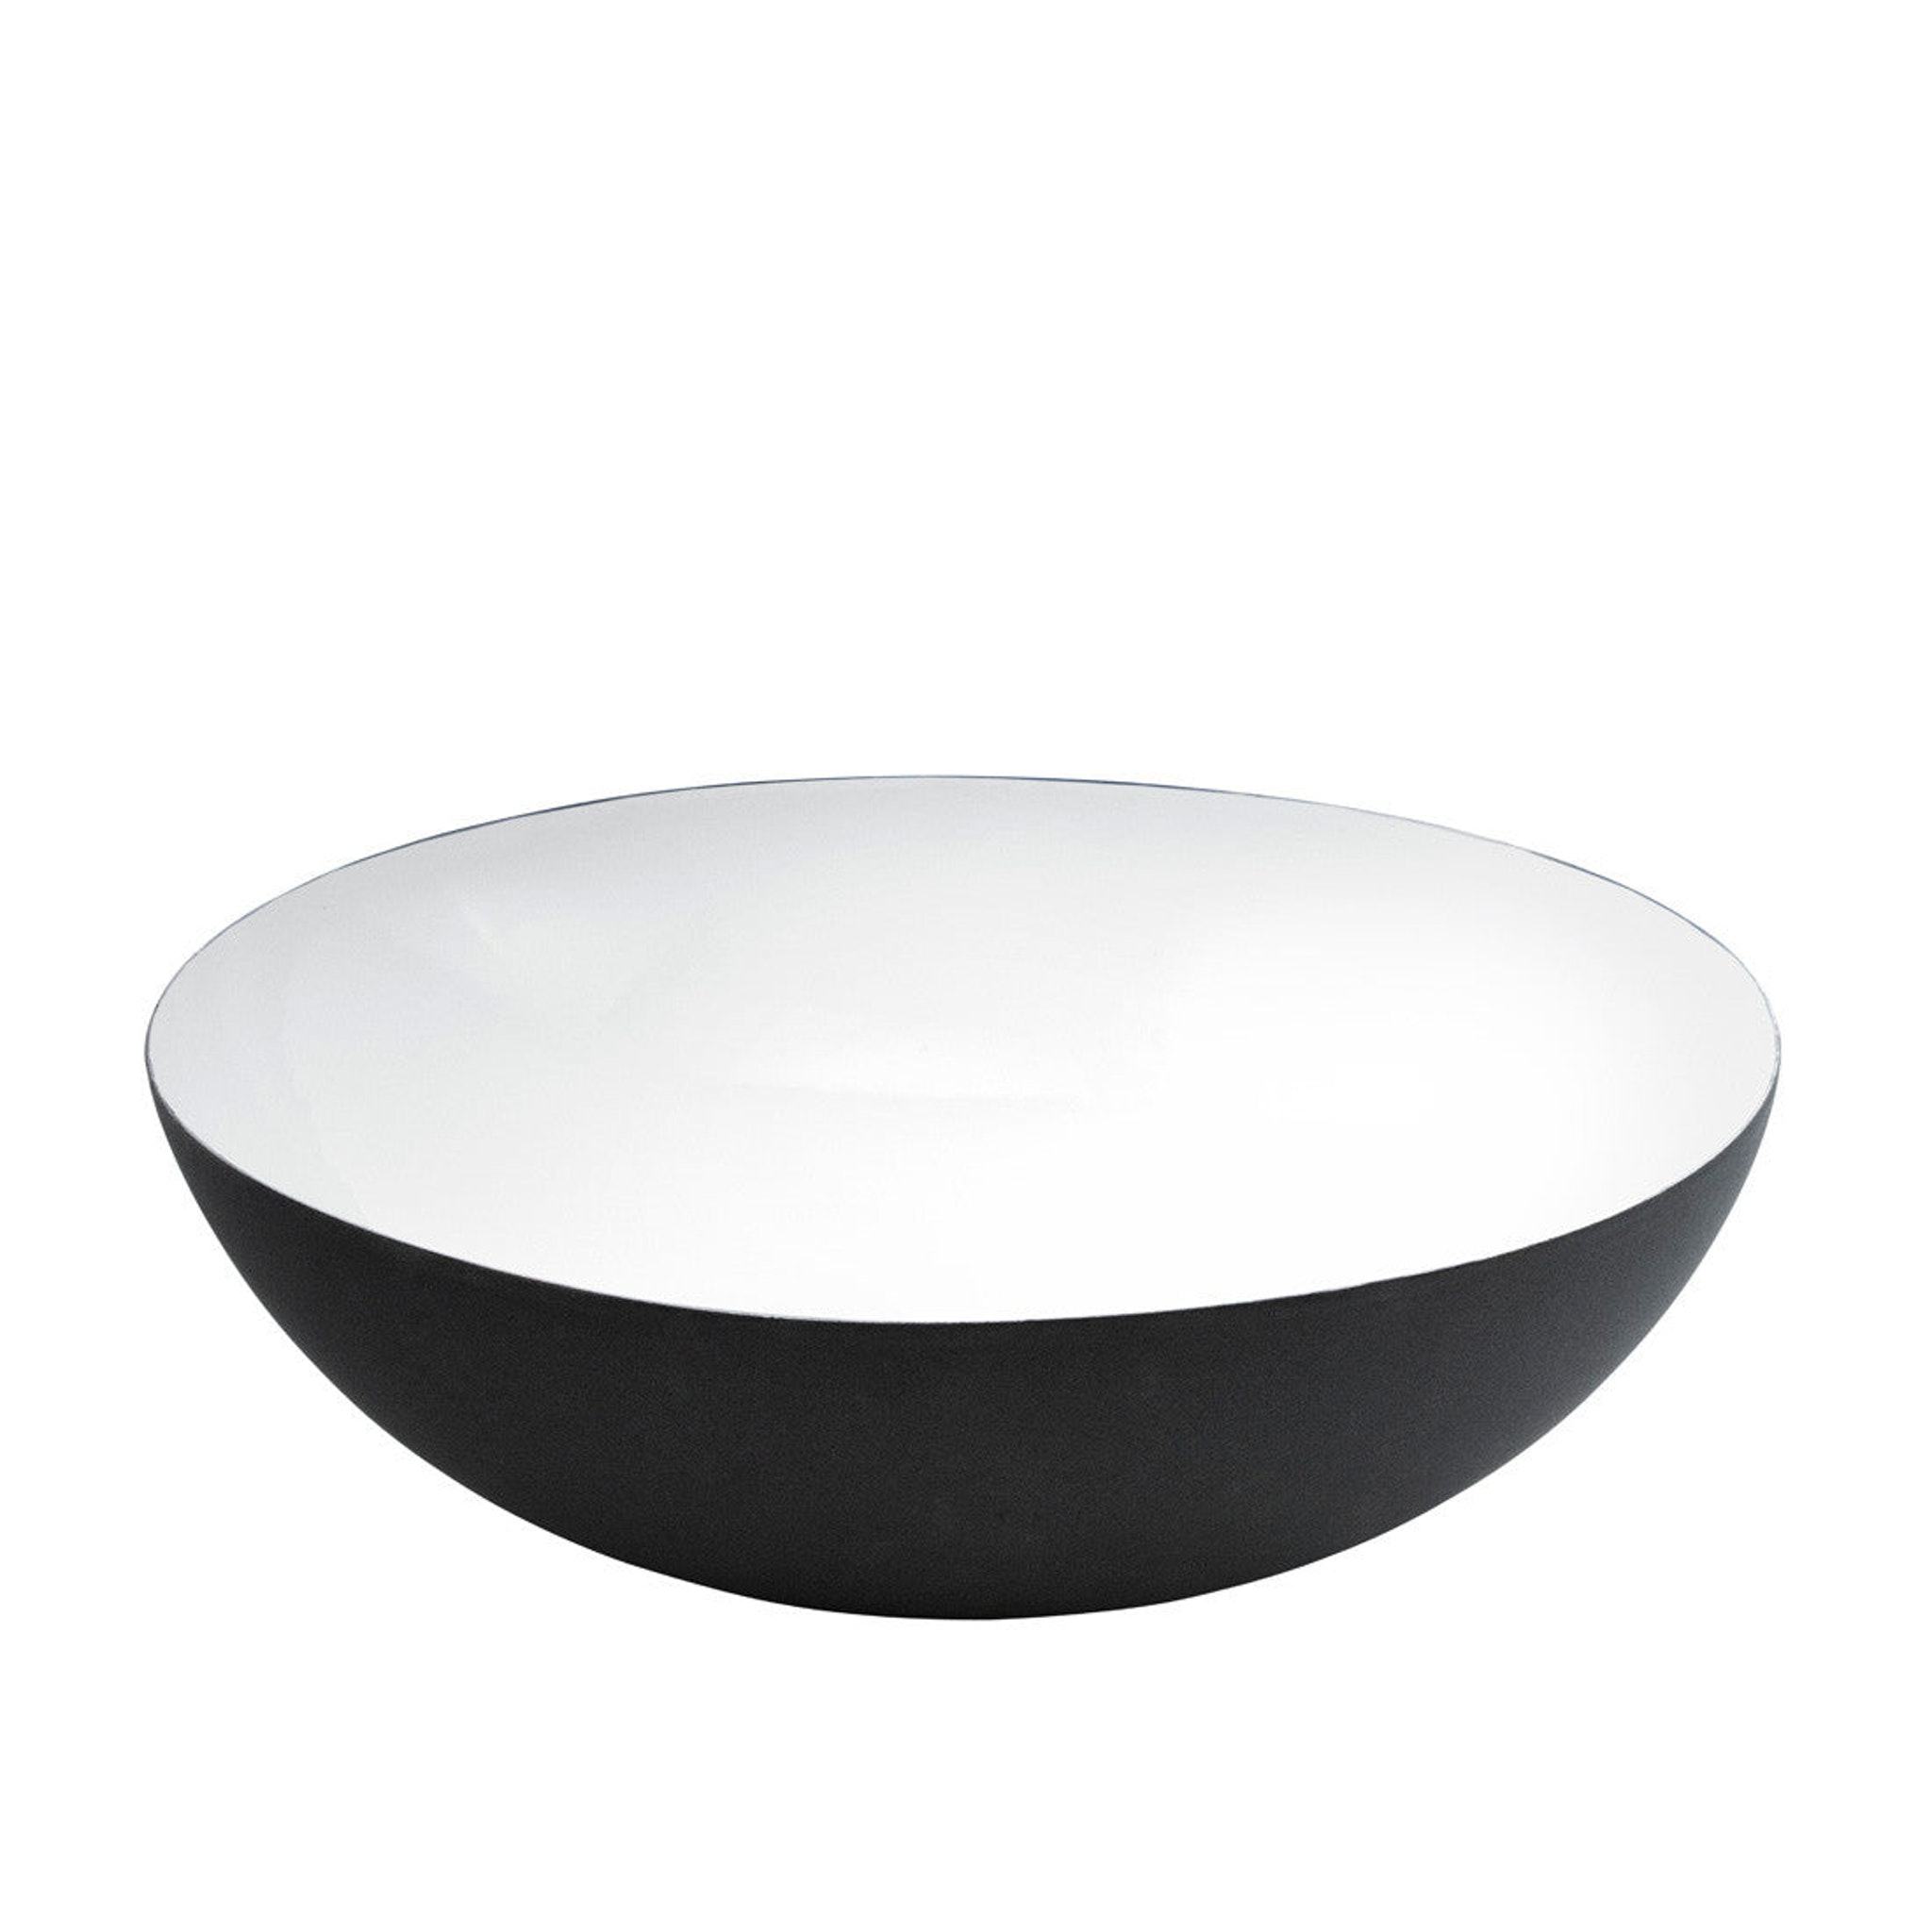 Krenit Bowl Large by Normann Copenhagen